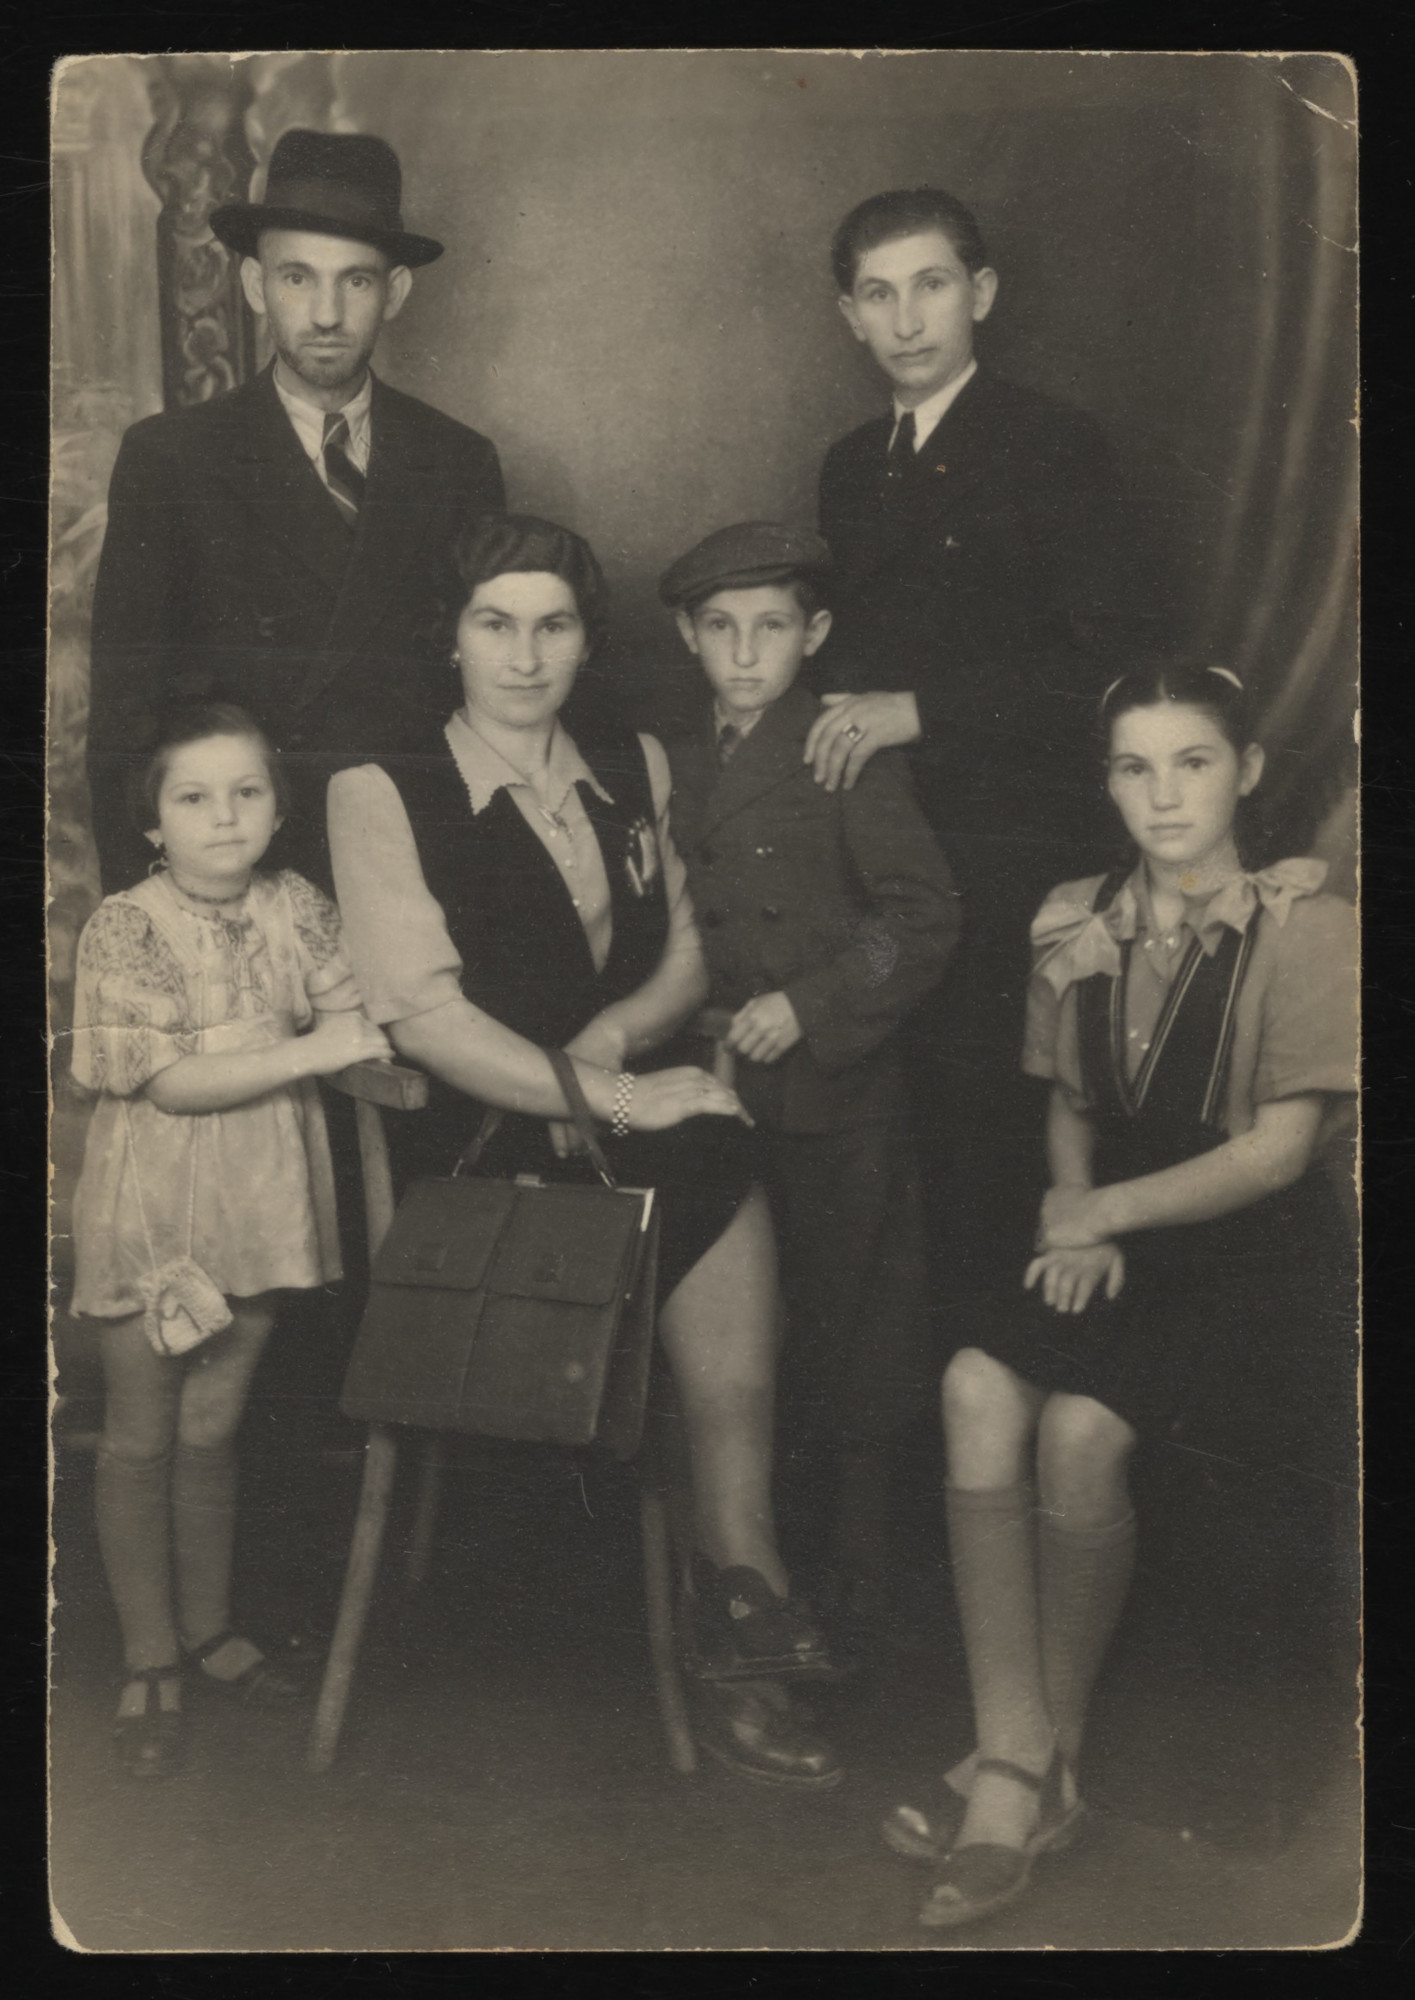 Postwar studio portrait of the Spitzer family.  Pictured from left to right are Lily, Anton, Fany, Nathan, Simcha Wax (a maternal cousin) and Sara Spitzer.